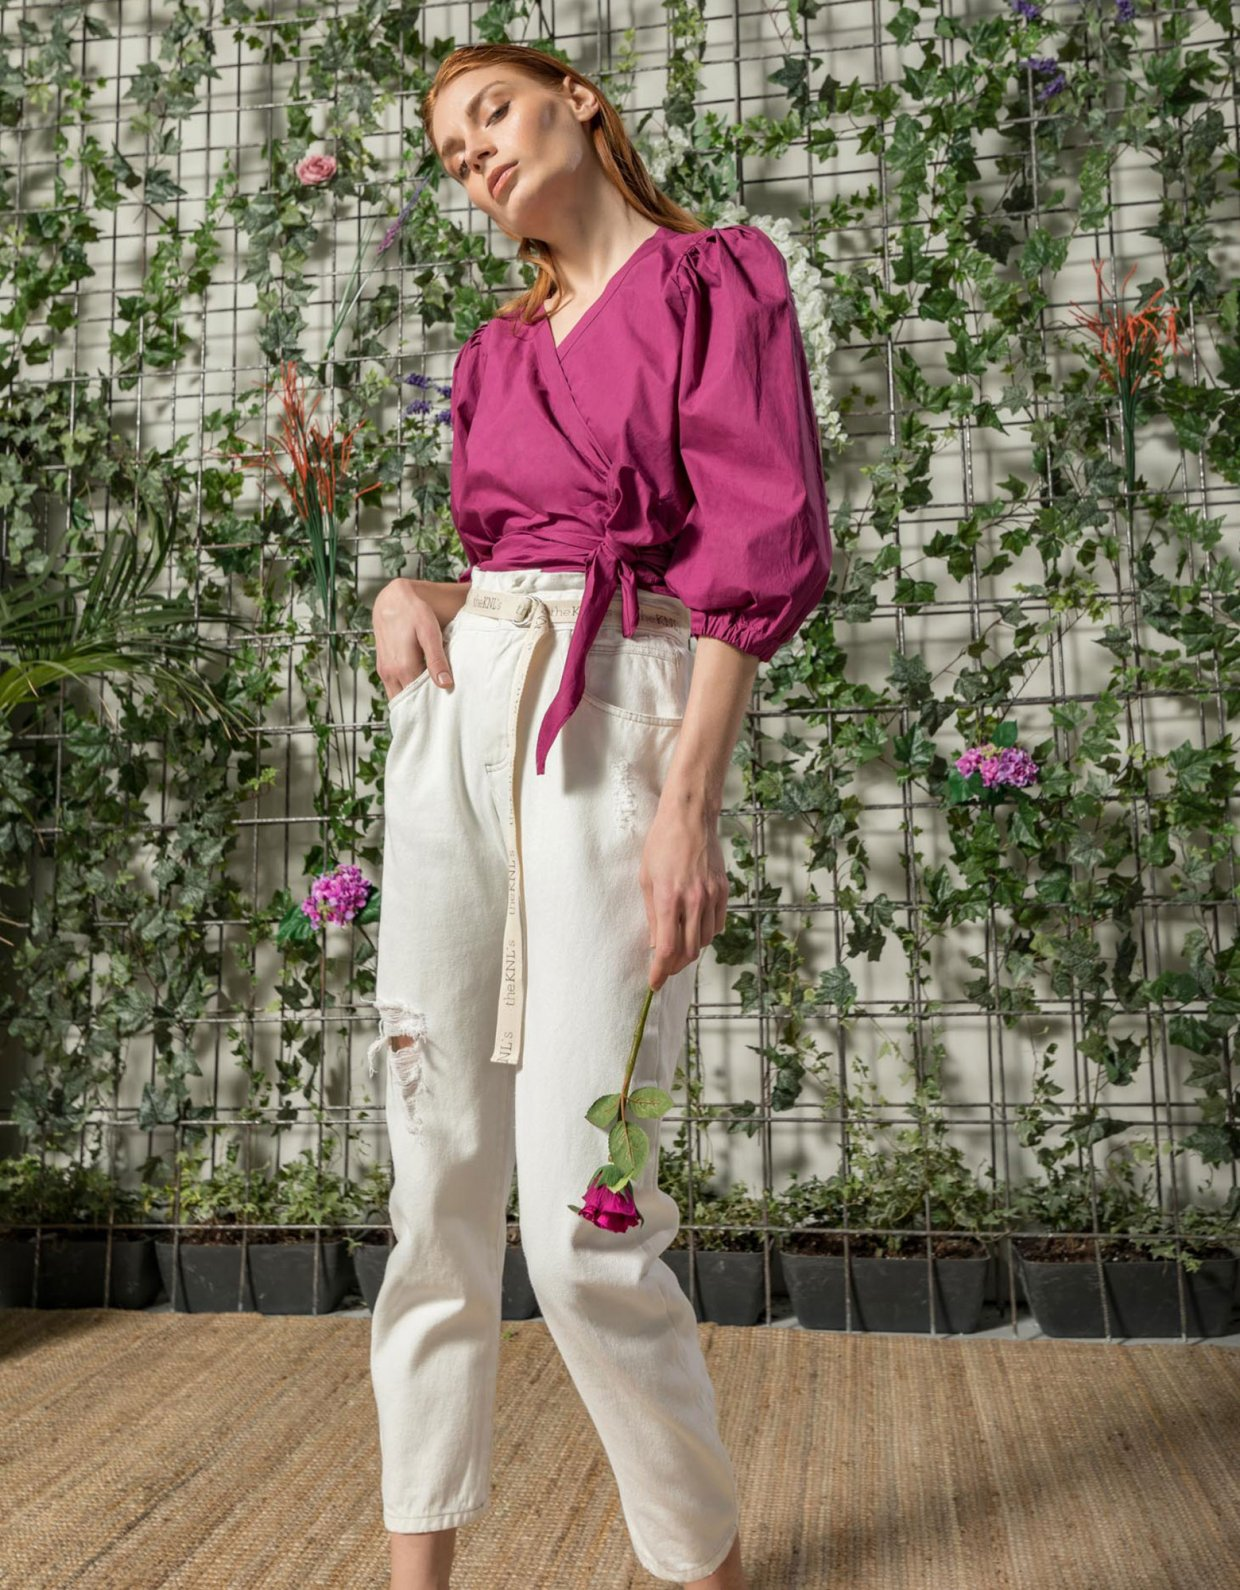 The Knl's Blouch off white jeans